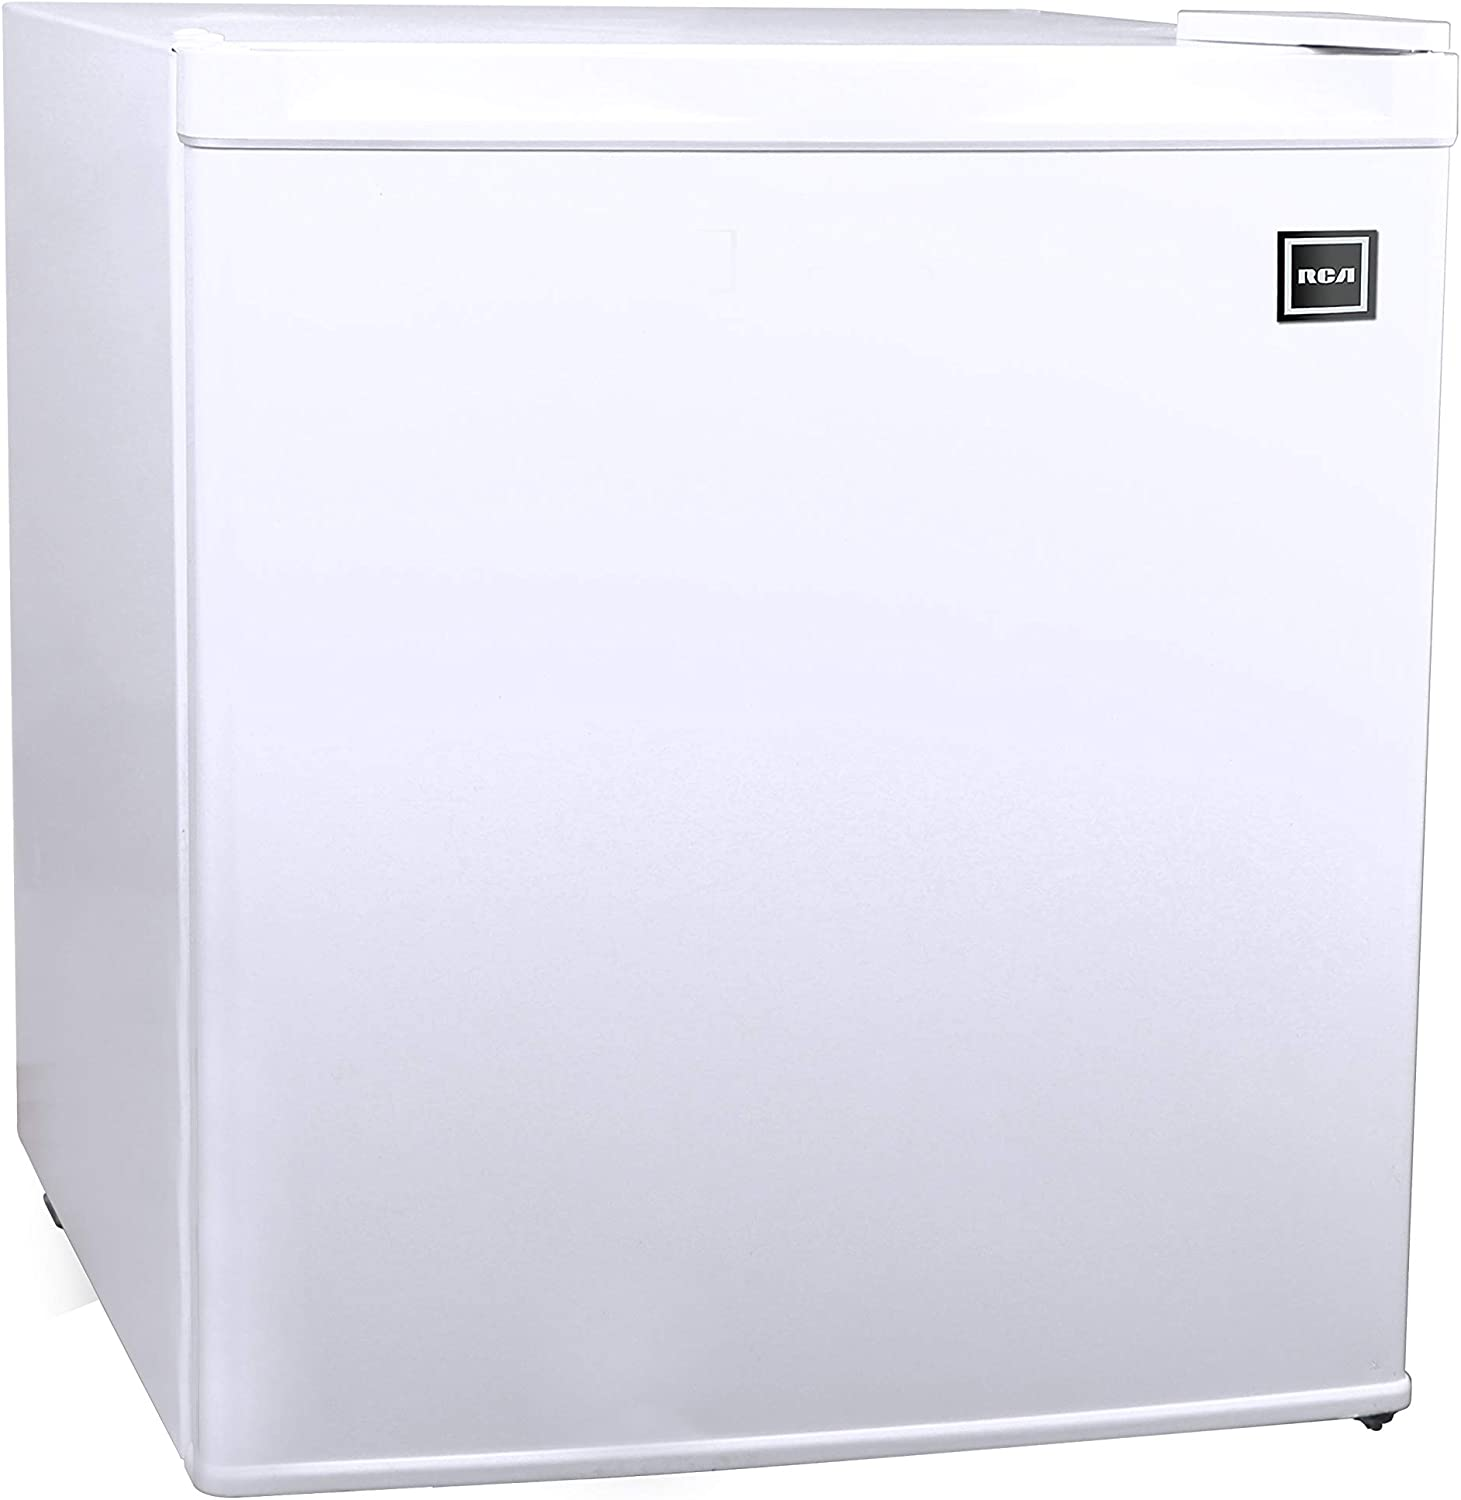 RCA RFRF110 Vertical Upright Freezer, 1.1 cu. ft, White